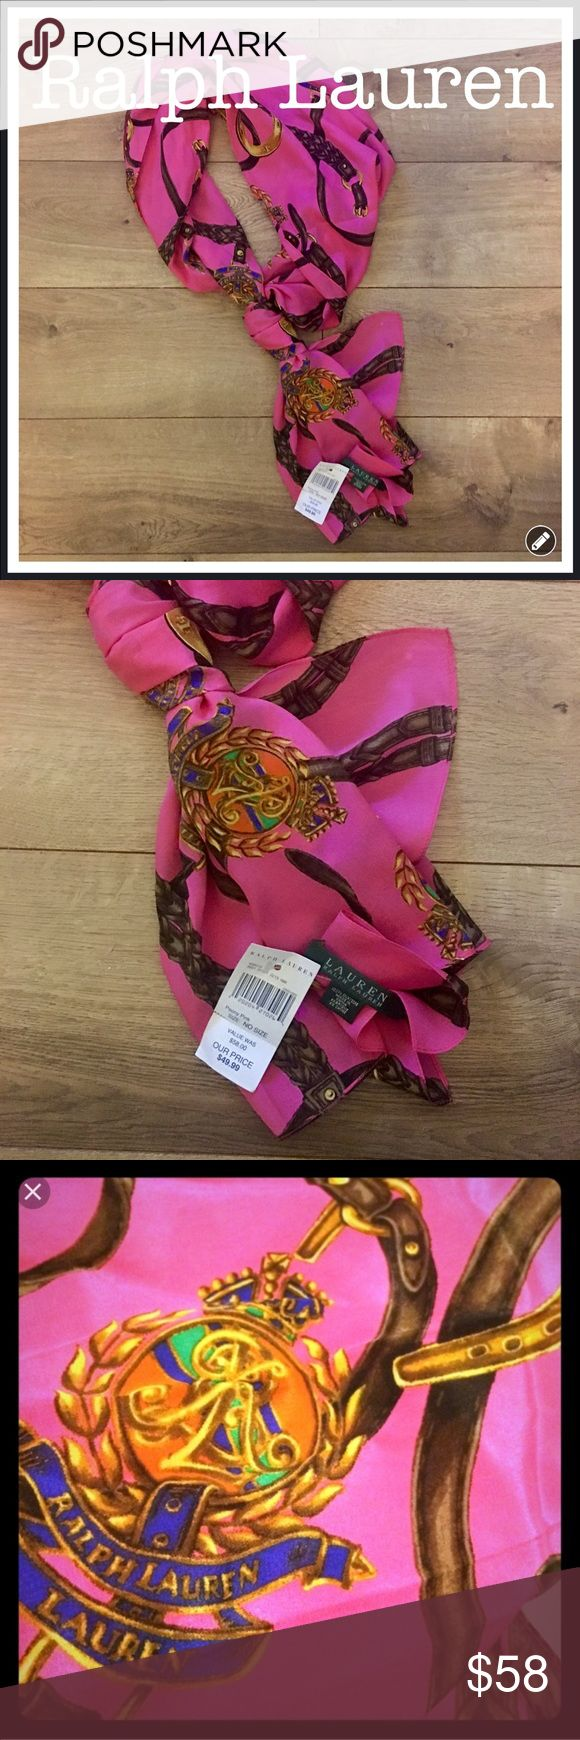 Ralph Lauren Pink Scarf 💕 Ralph Lauren Pink Scarf, brand new and perfect for spring. it was purchased at the Ralph Lauren Factory store at the Philly Premium Outlets. 💕 Ralph Lauren Accessories Scarves & Wraps